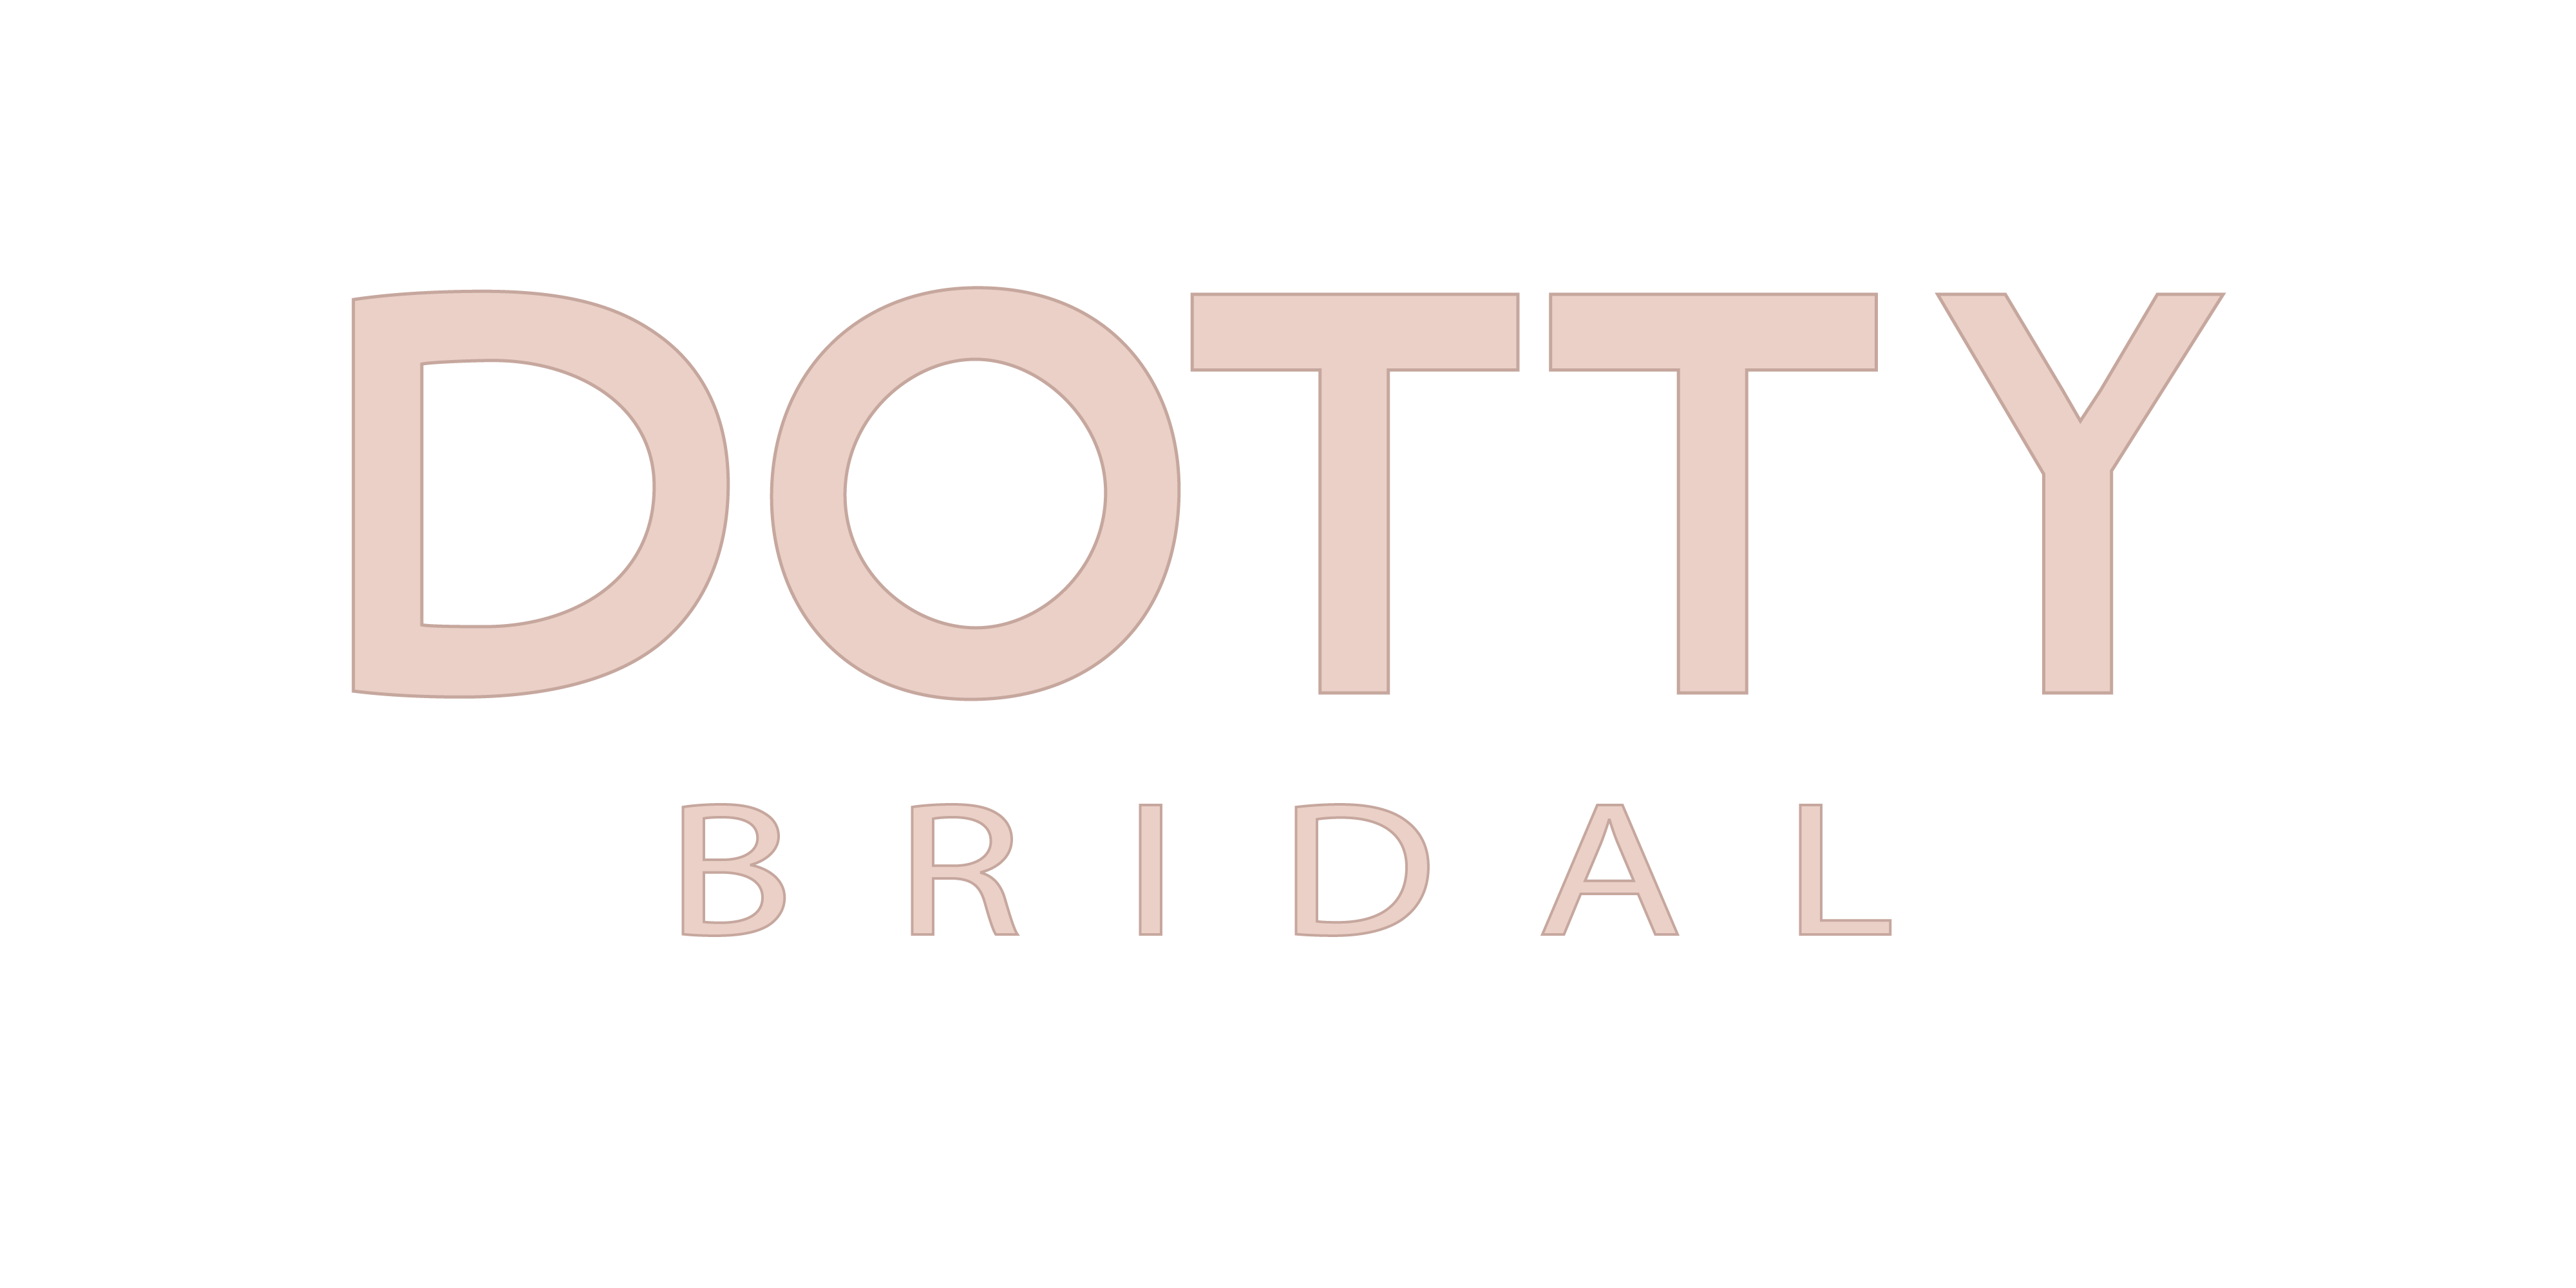 Dotty Bridal